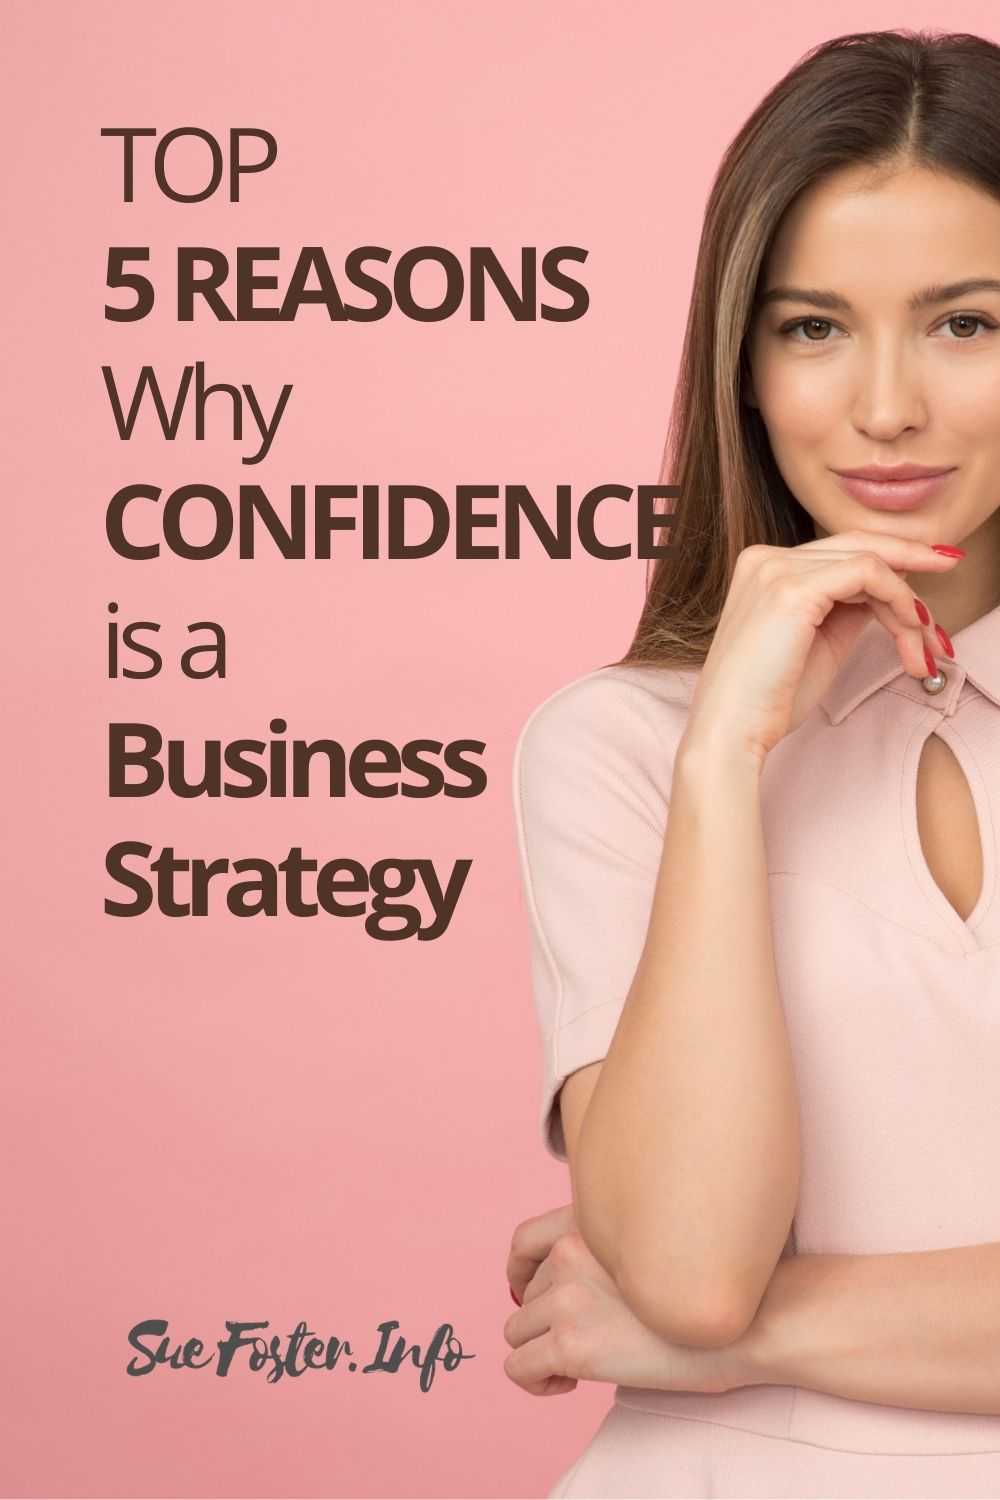 Top 5 Reasons Why Confidence is a Business Strategy